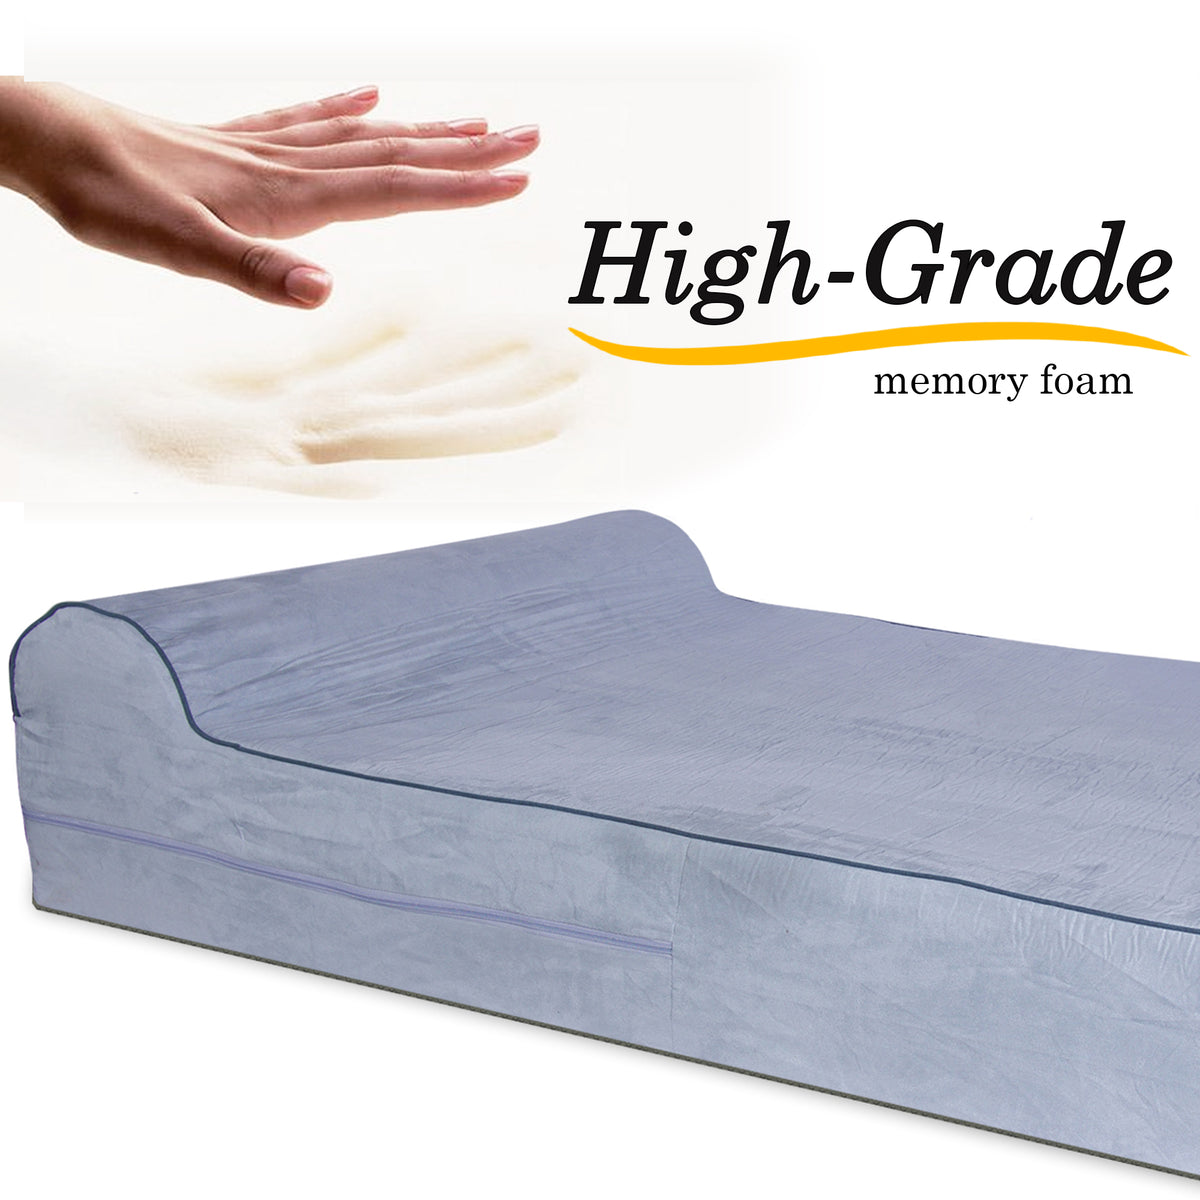 Orthopedic Waterproof Memory Foam Bed With Pillow Grey Large Kopeks